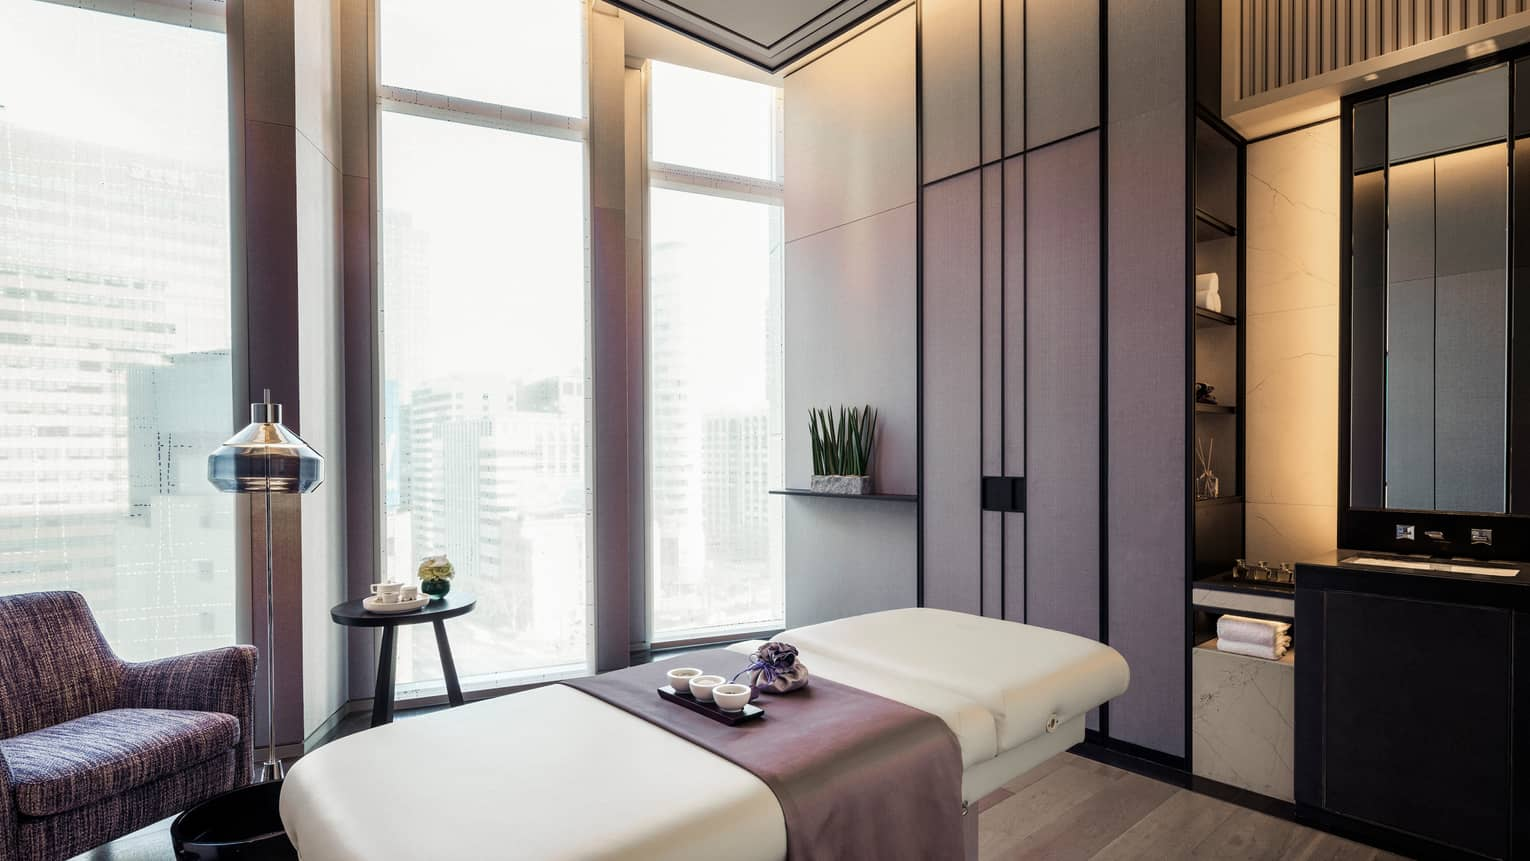 Purple accent chair, blanket over massage table with Spa tray by floor-to-ceiling windows, shades